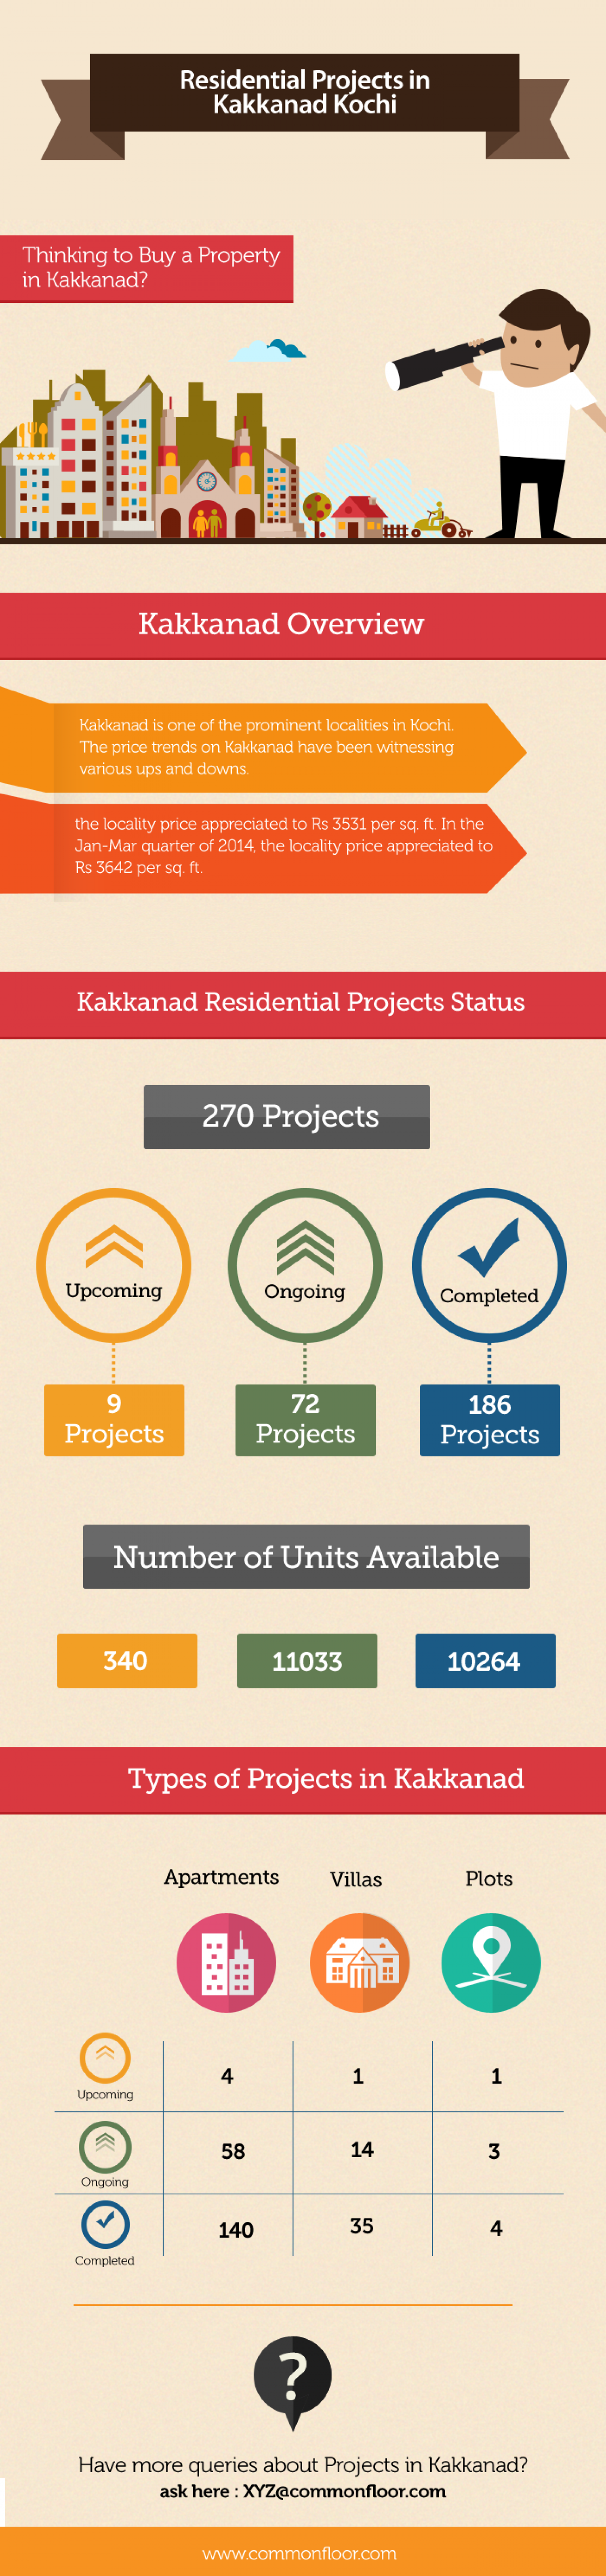 Residential Projects in Kakkanad Kochi Infographic